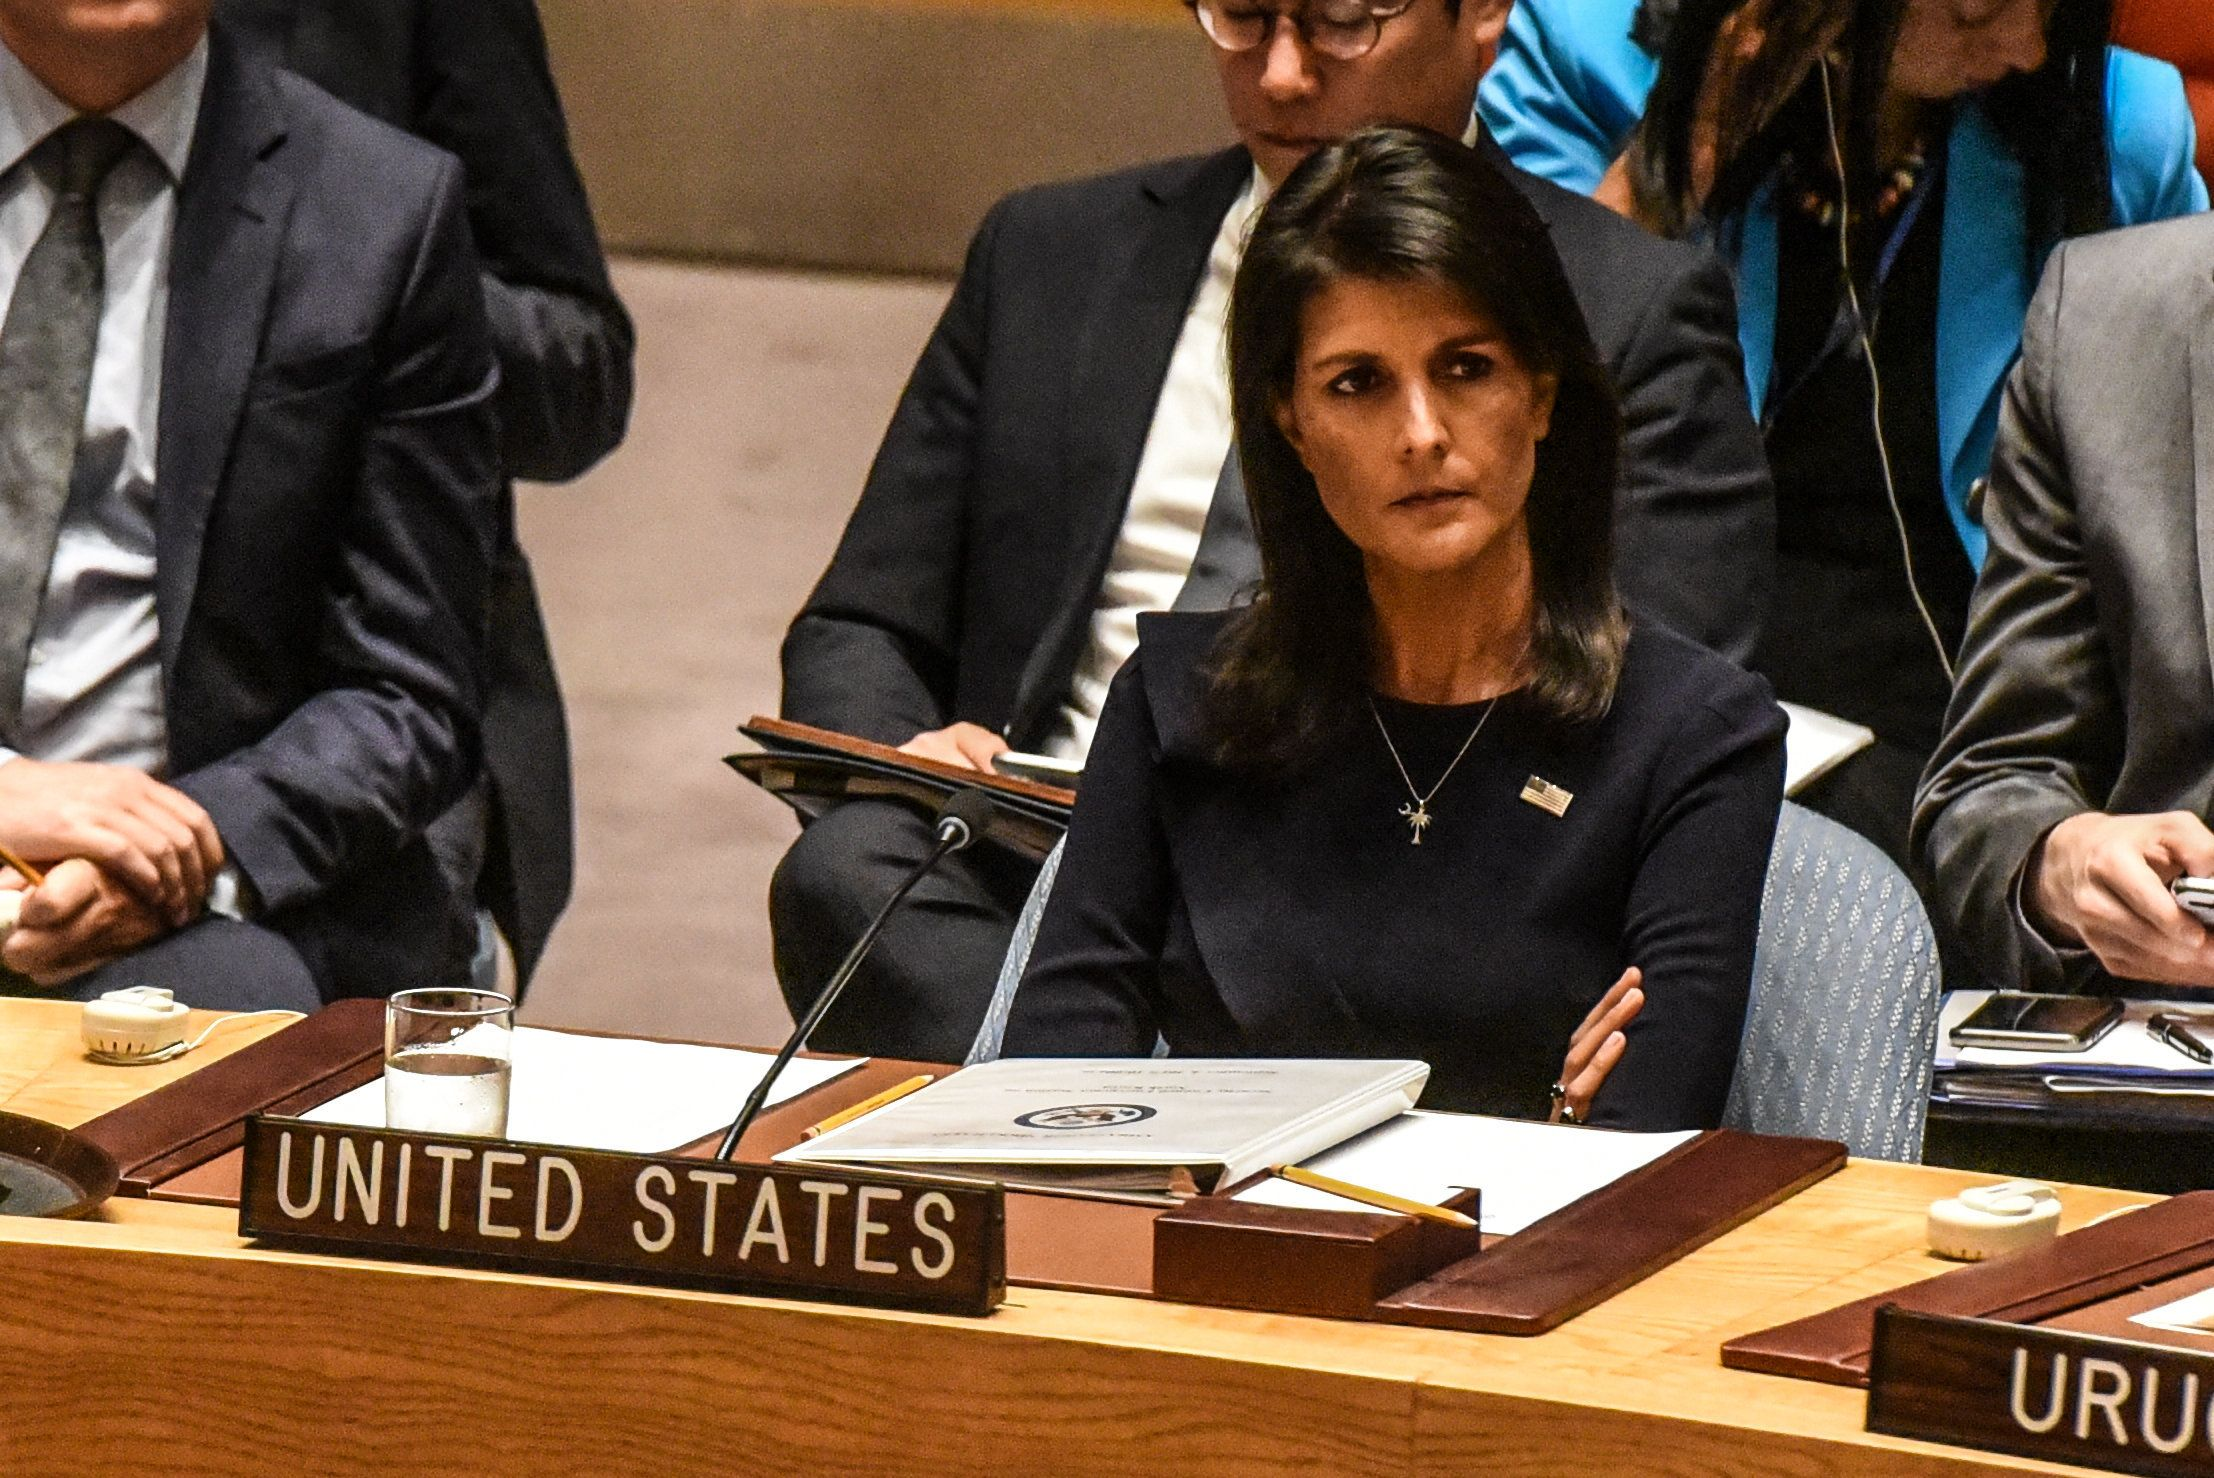 NEW YORK, NY - SEPTEMBER 4:  Ambassador to the UN, Nikki Haley, listens to remarks during a United Nations Security Council meeting on North Korea on September 4, 2017 in New York City. The securty council was holding its second emergency meeting in a week after North Korea announced the detonation of what it called an underground  hydrogen bomb September 3.  (Photo by Stephanie Keith/Getty Images)